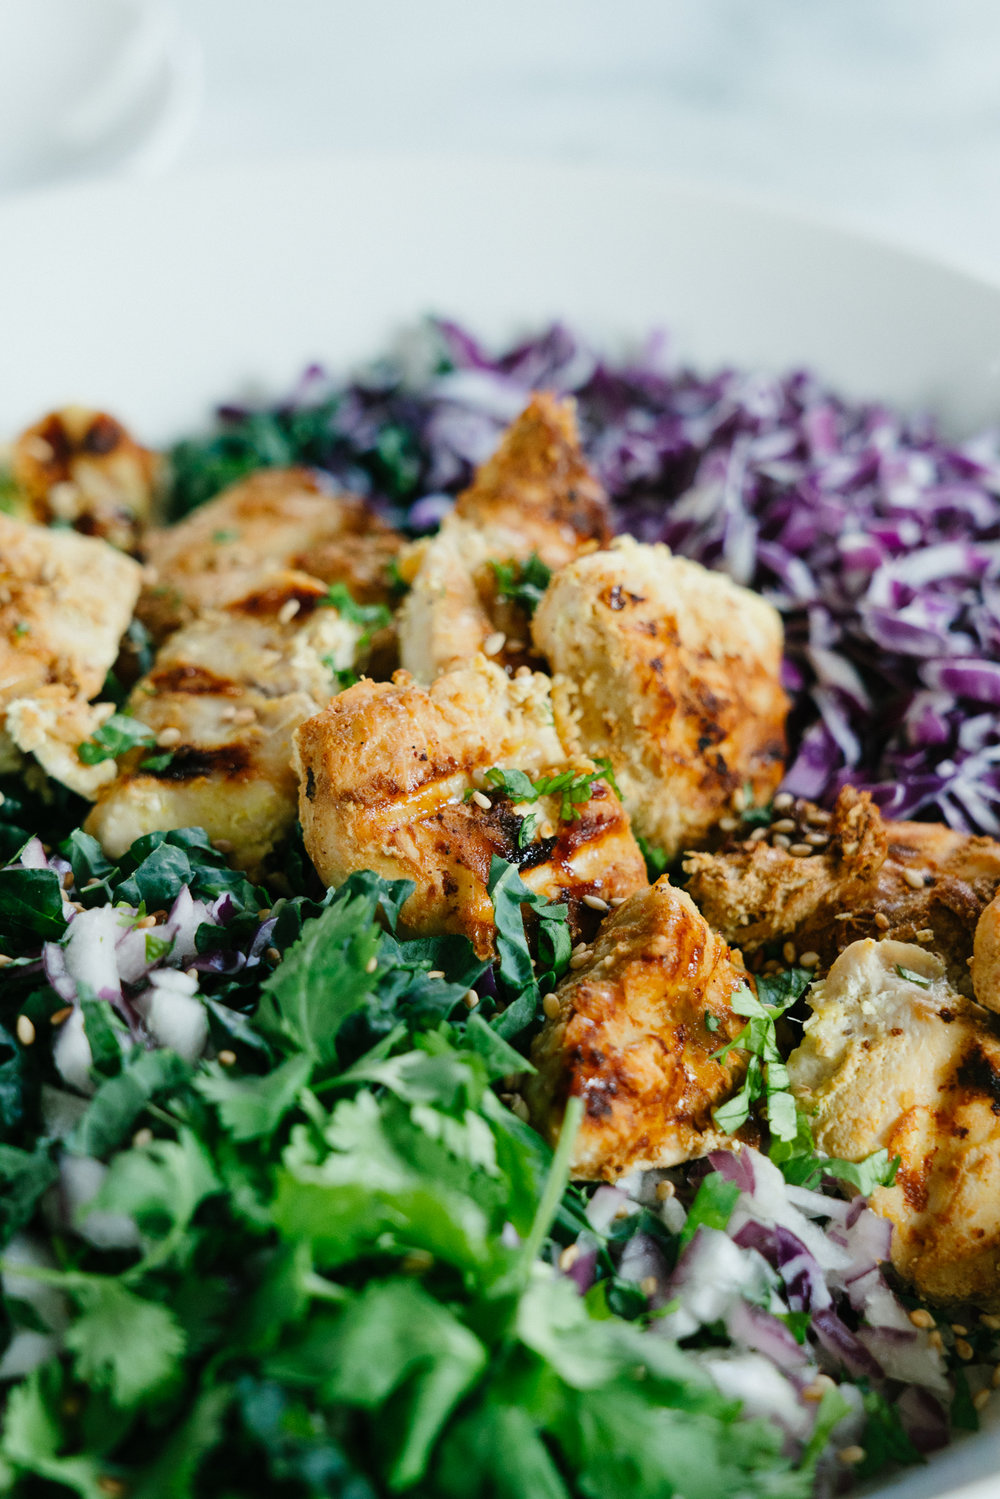 Grilled Honey Yogurt Chicken Over Cabbage Kale Salad